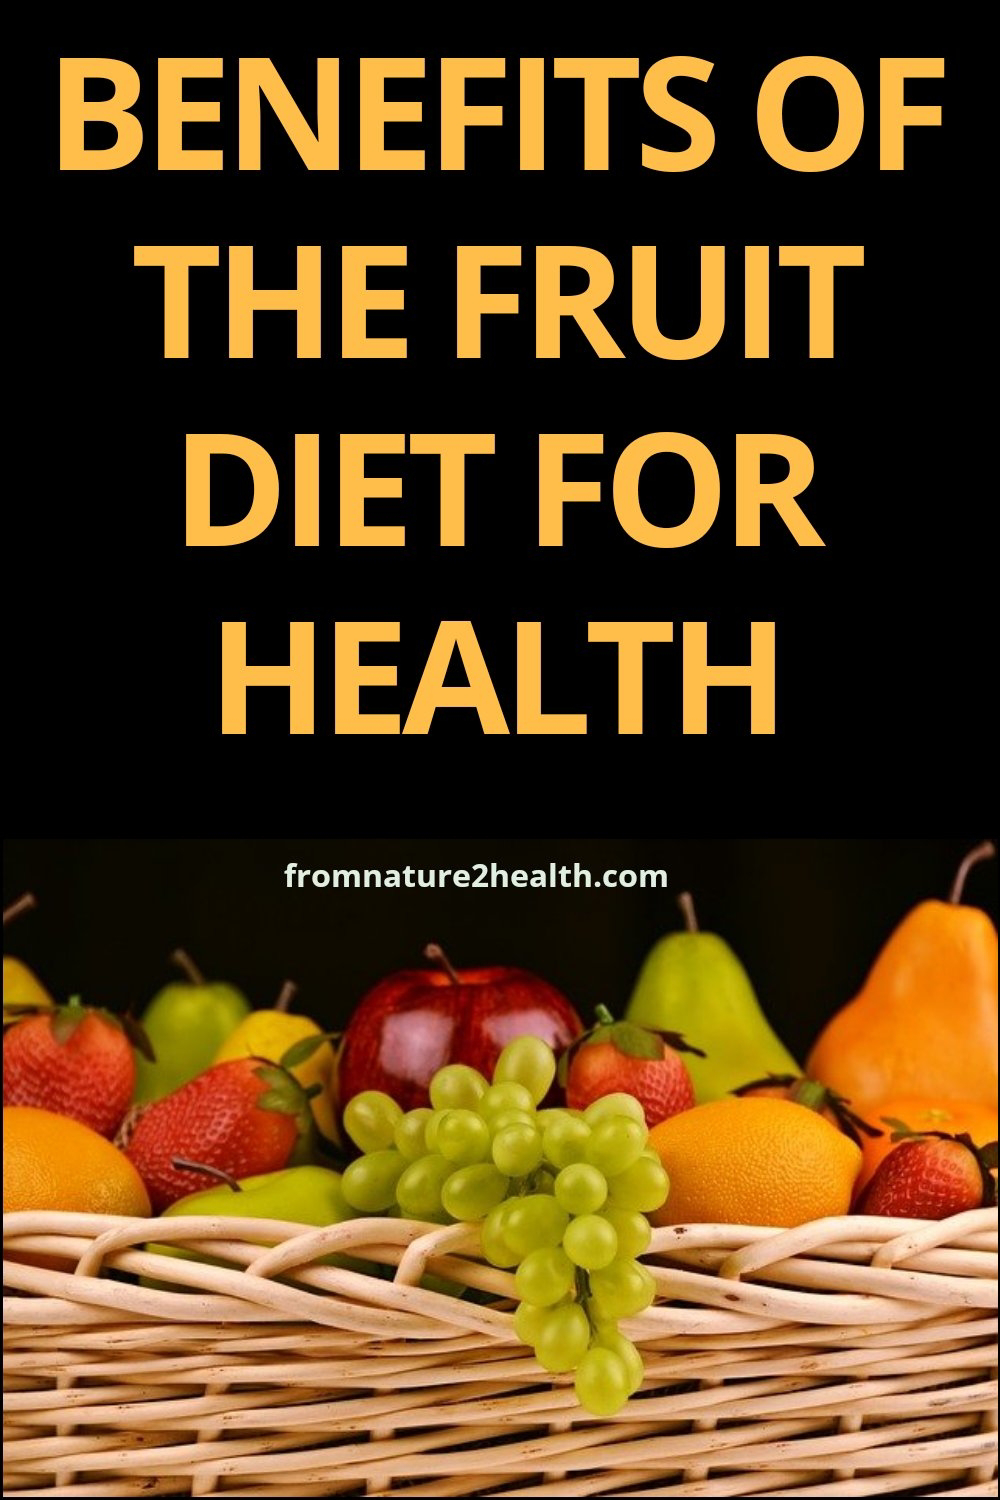 Benefits of the Fruit Diet for Health